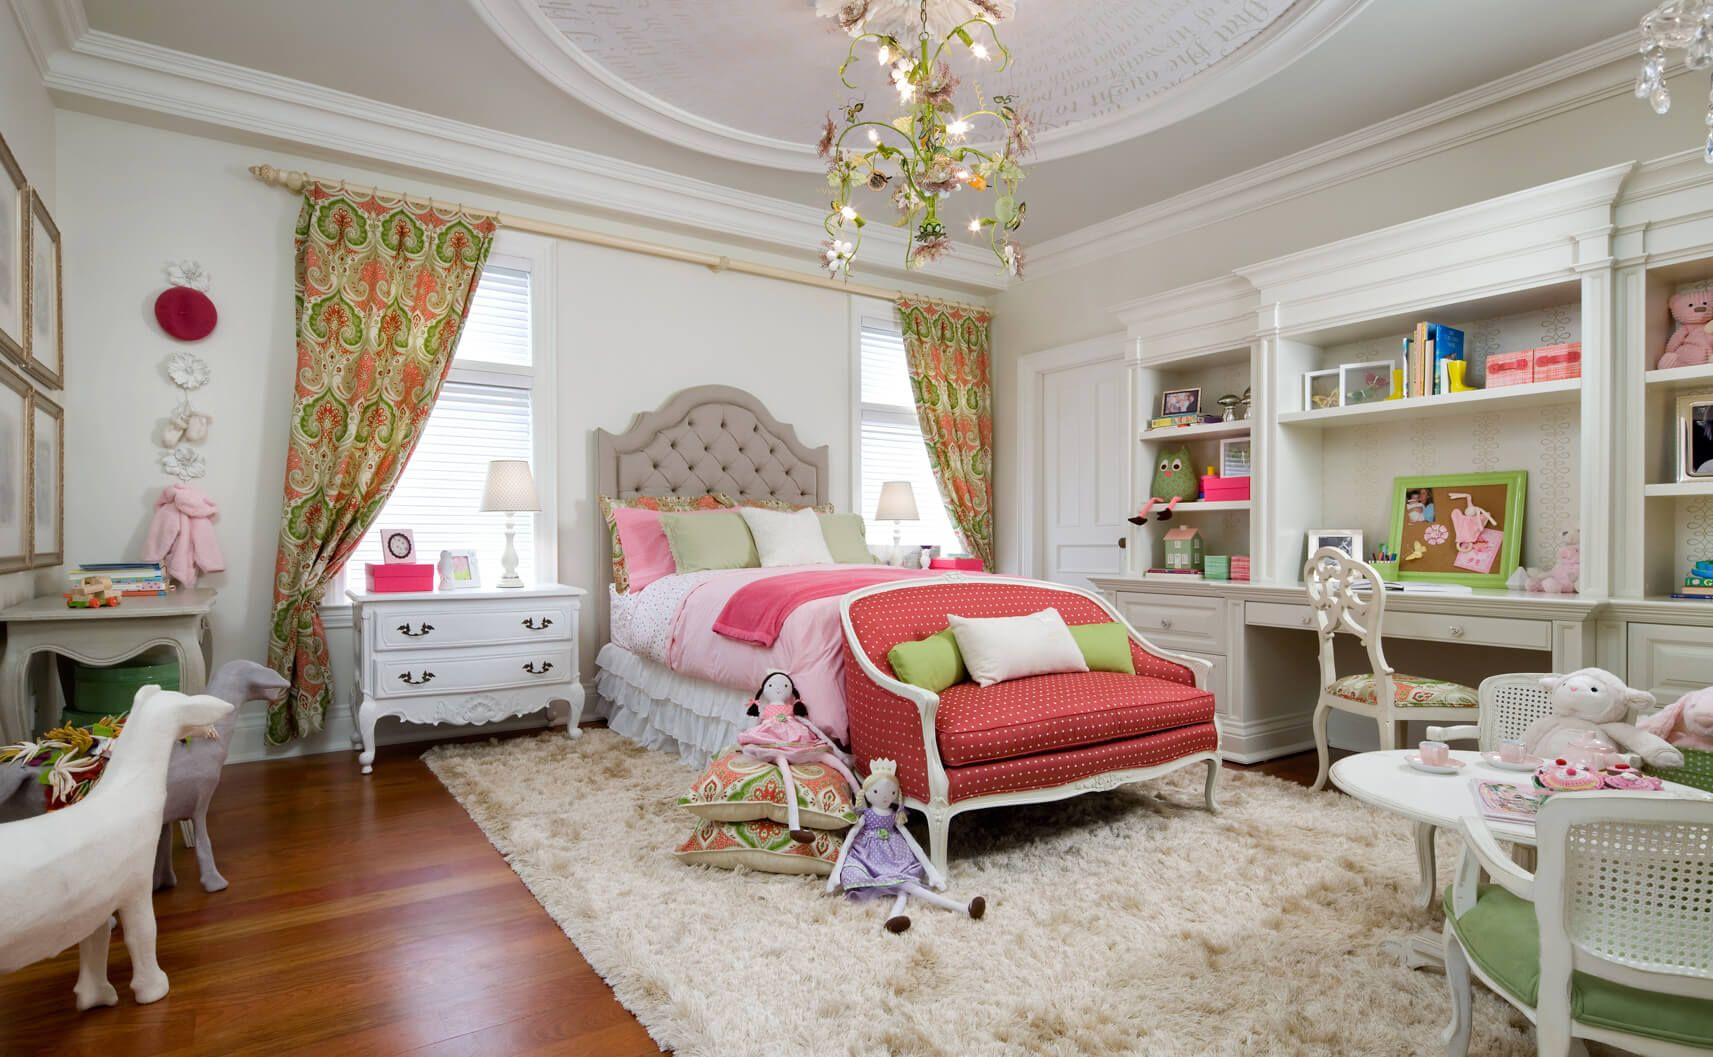 Candice Olson Bedroom Designs Endearing Resplendent Little Girl's Roomcandice Olson Design And Brandon Review